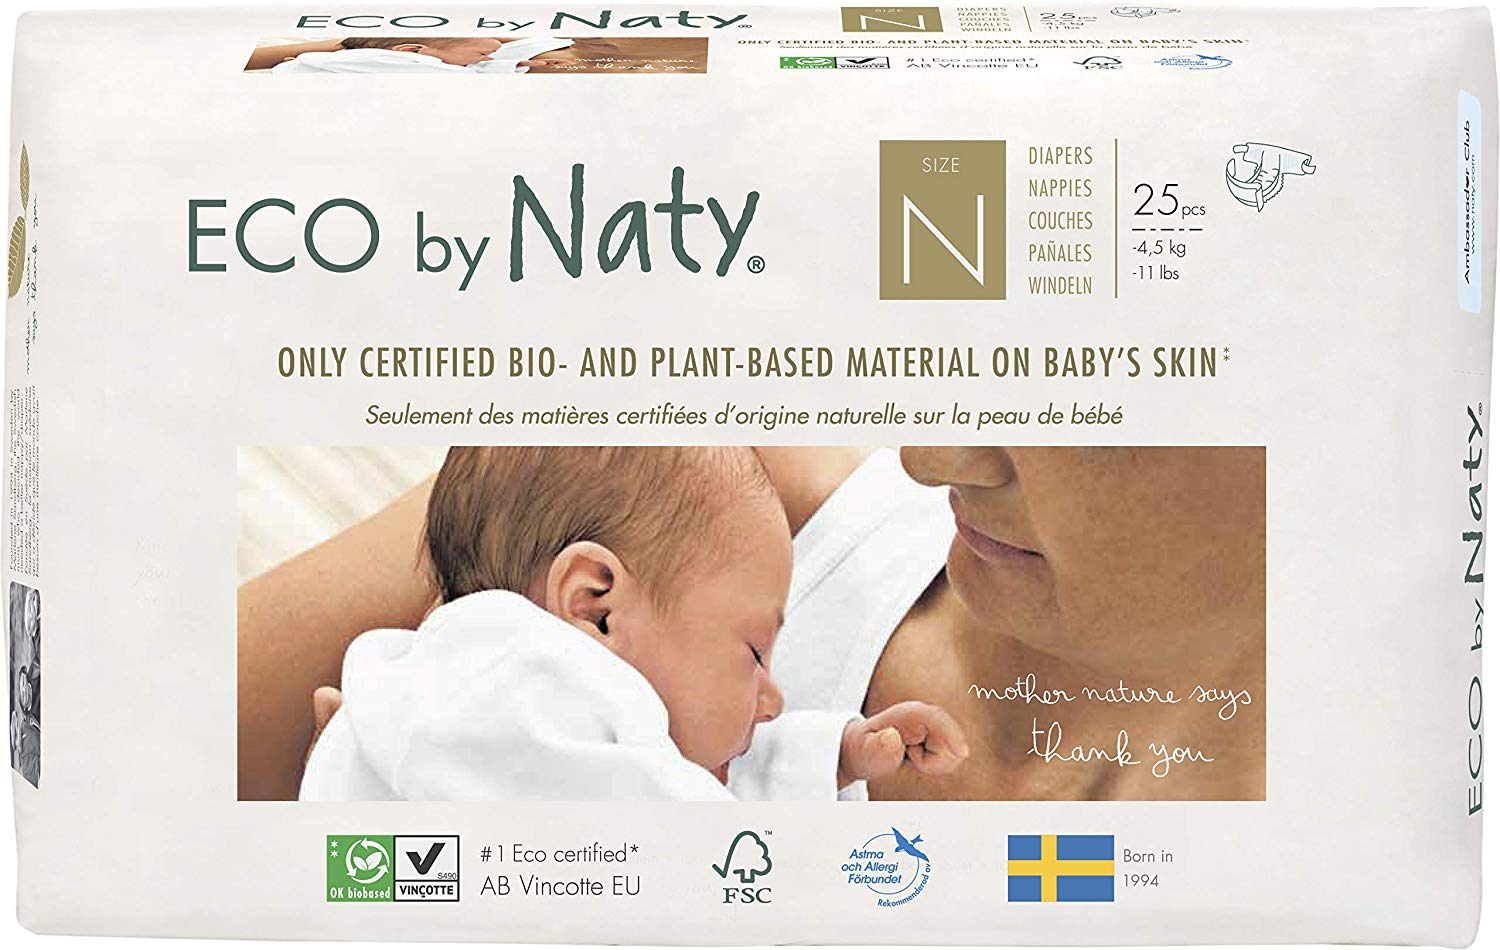 6. Eco by Naty, Size Newborn